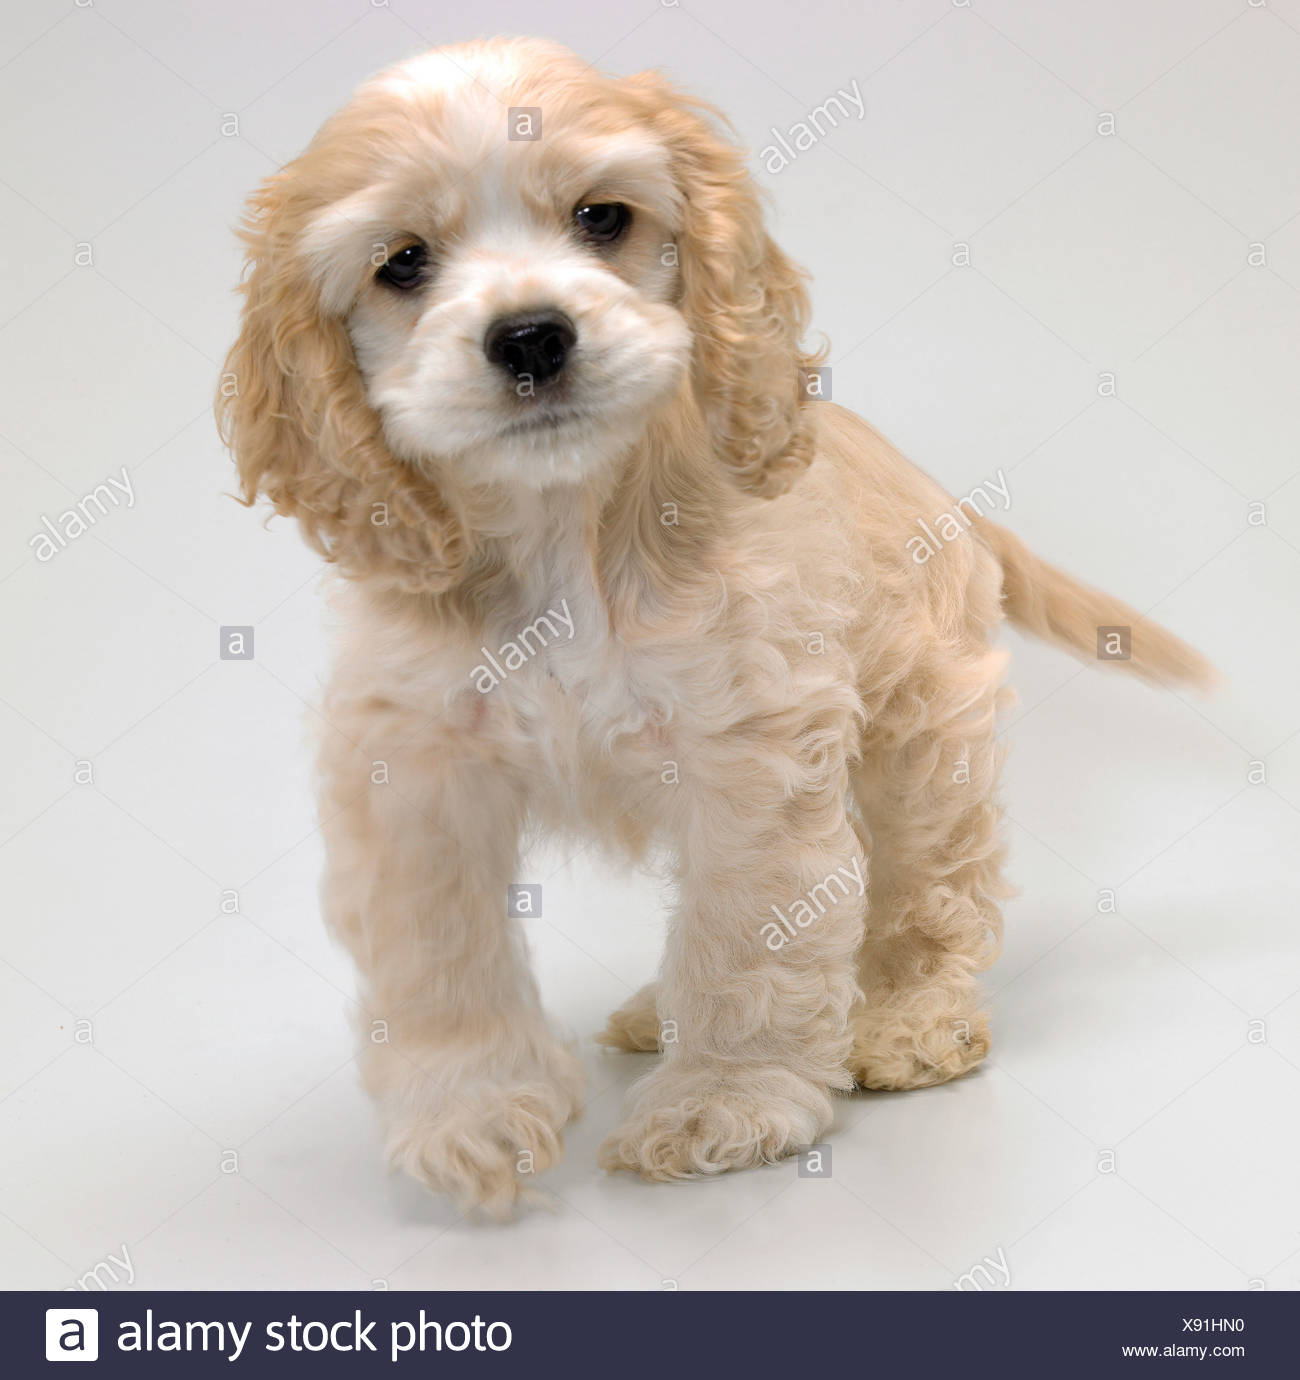 An American Cocker Spaniel puppy standing - Stock Image